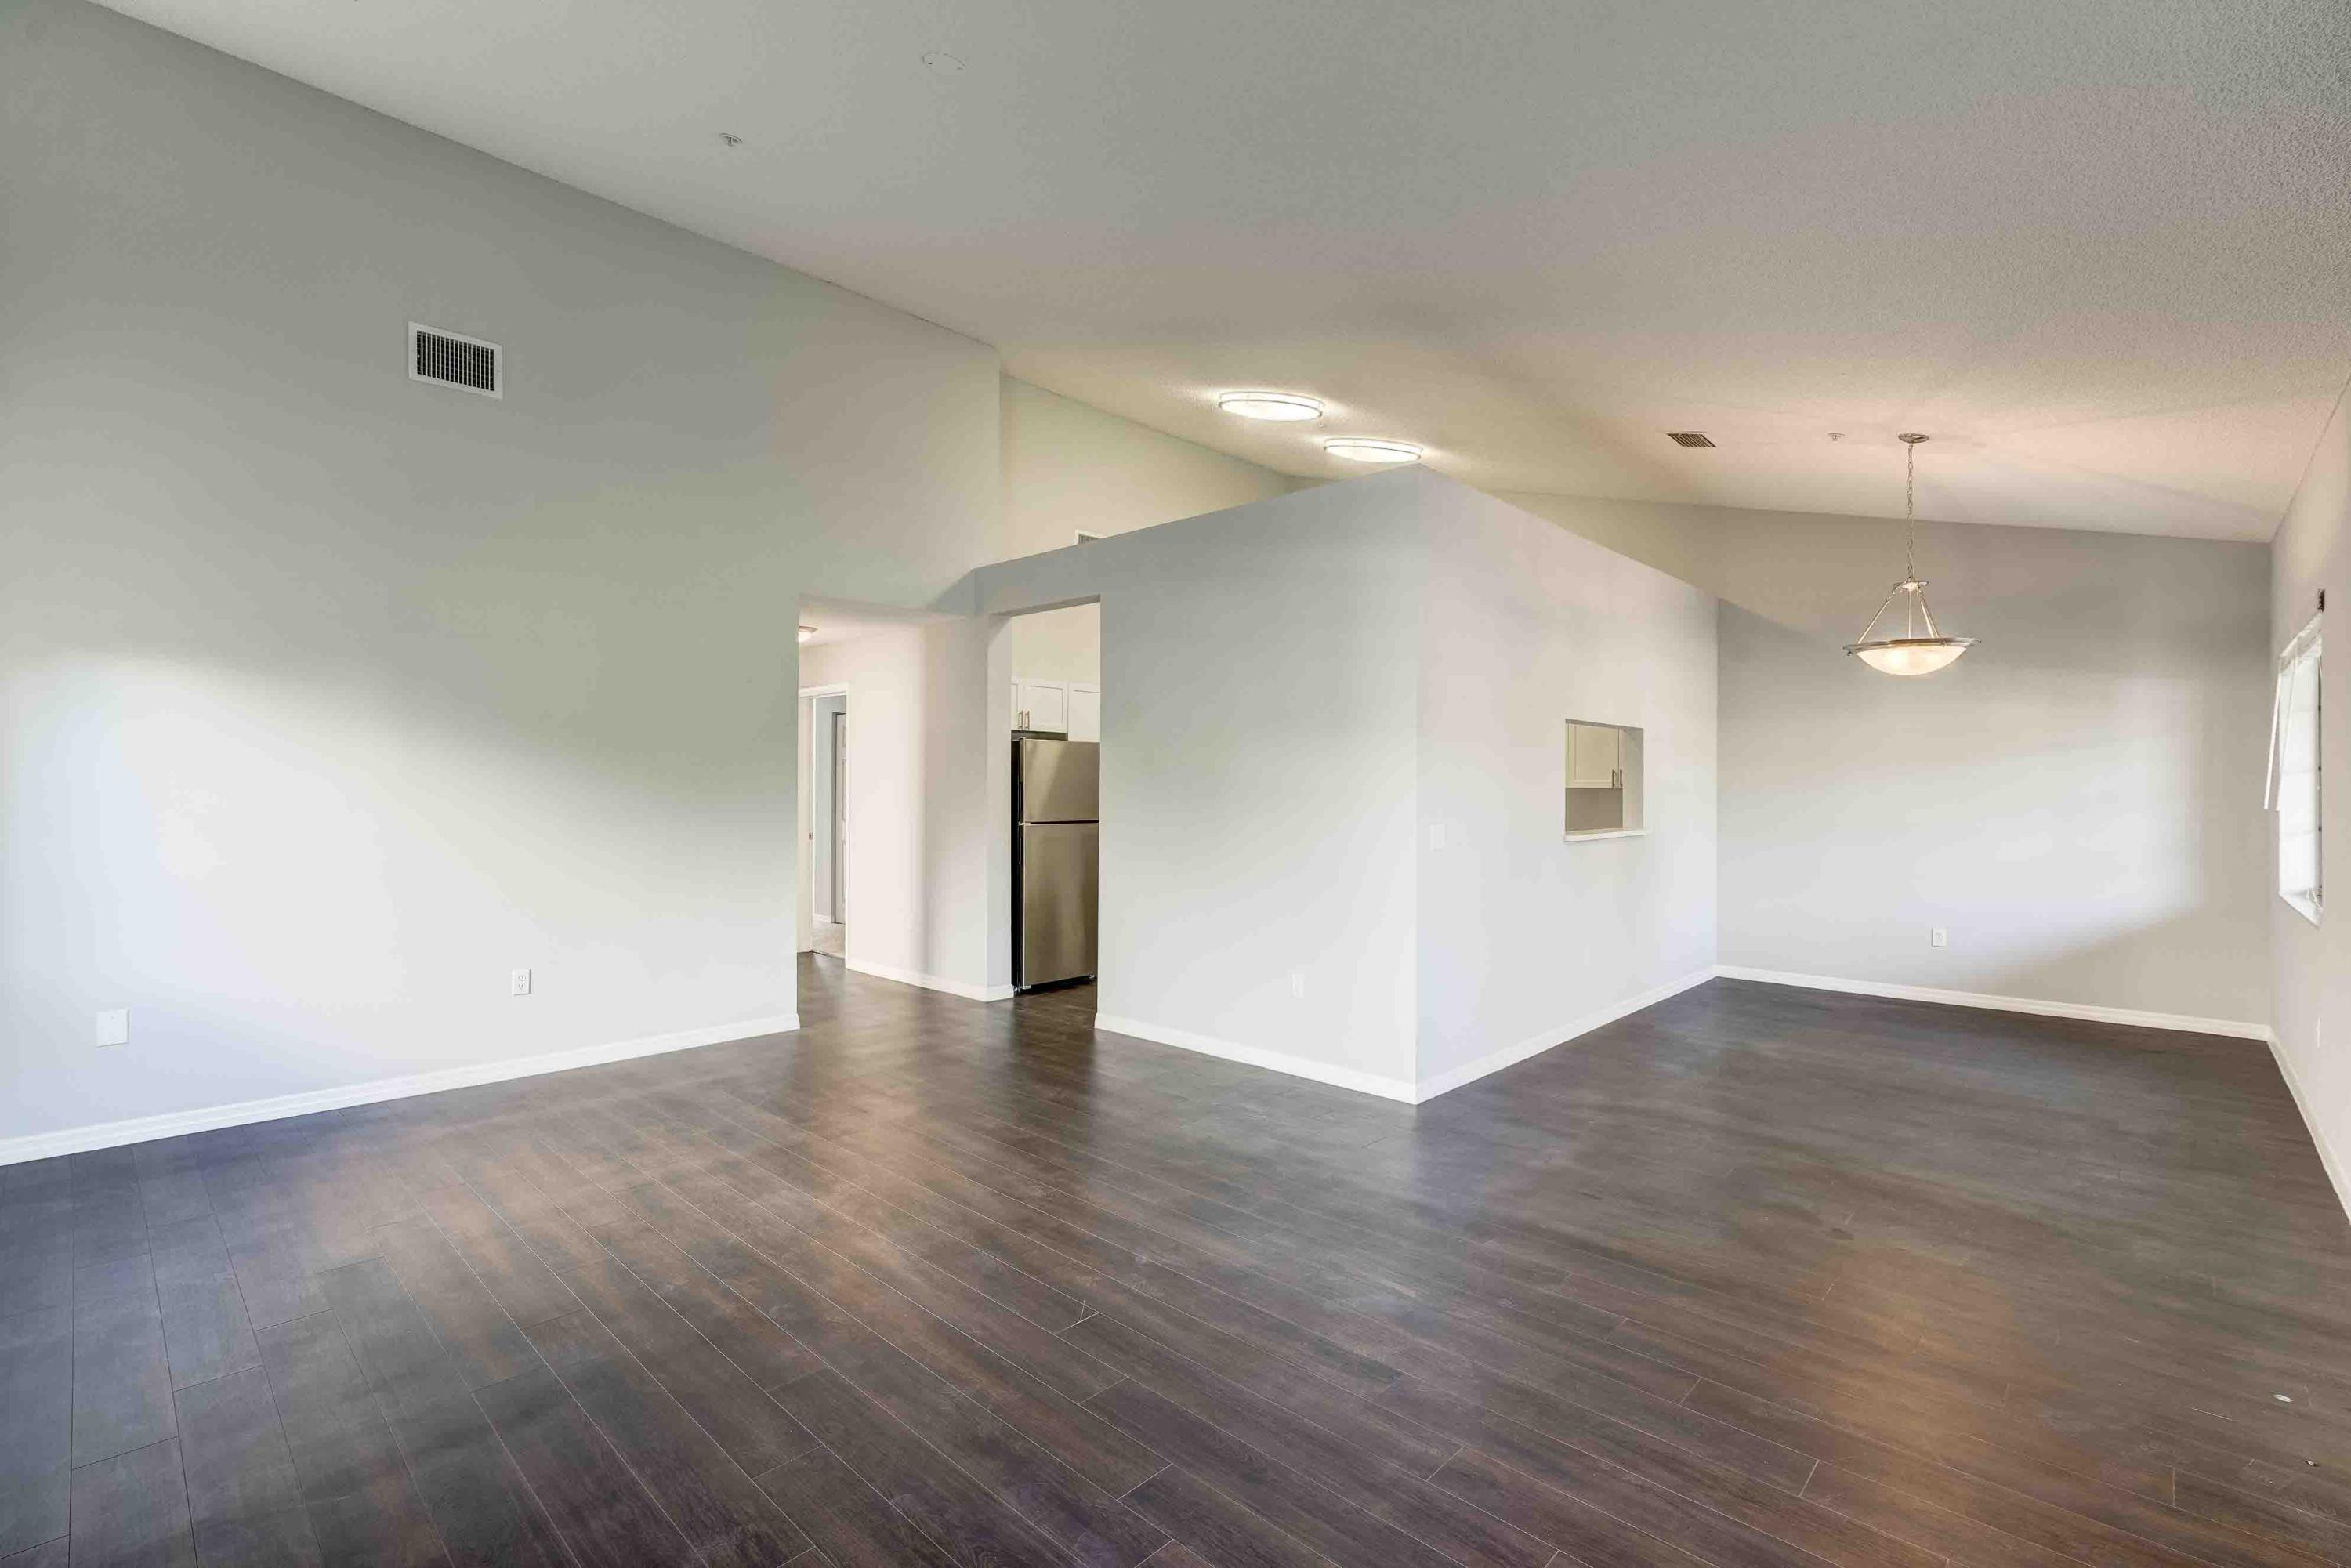 4685 Haverhill Road, West Palm Beach, Florida 33417, 2 Bedrooms Bedrooms, ,2 BathroomsBathrooms,Residential,for Rent,Maridadi Apartments --- (Floridian Model),Haverhill,RX-10655684, , , ,for Rent